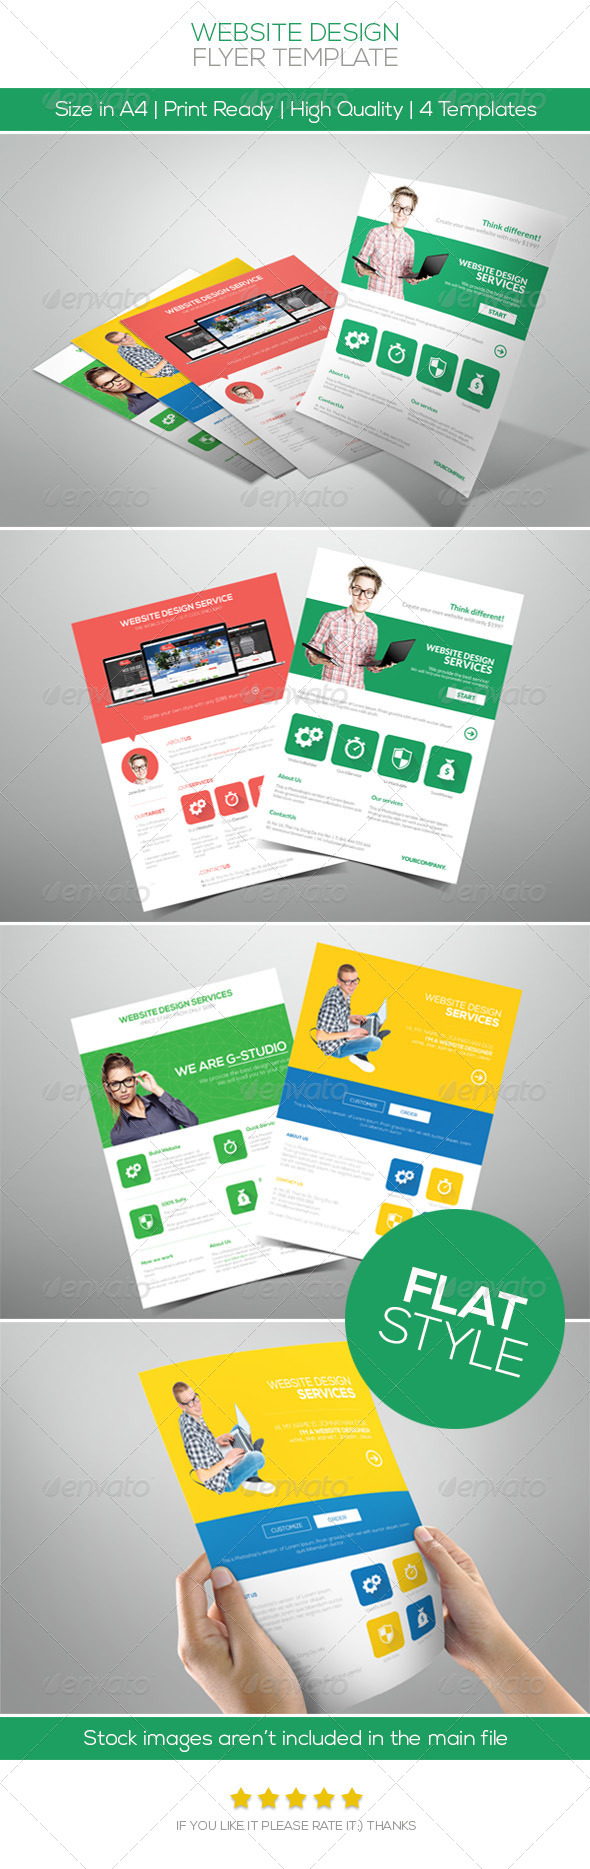 Flat Website Design Flyer - Commerce Flyers